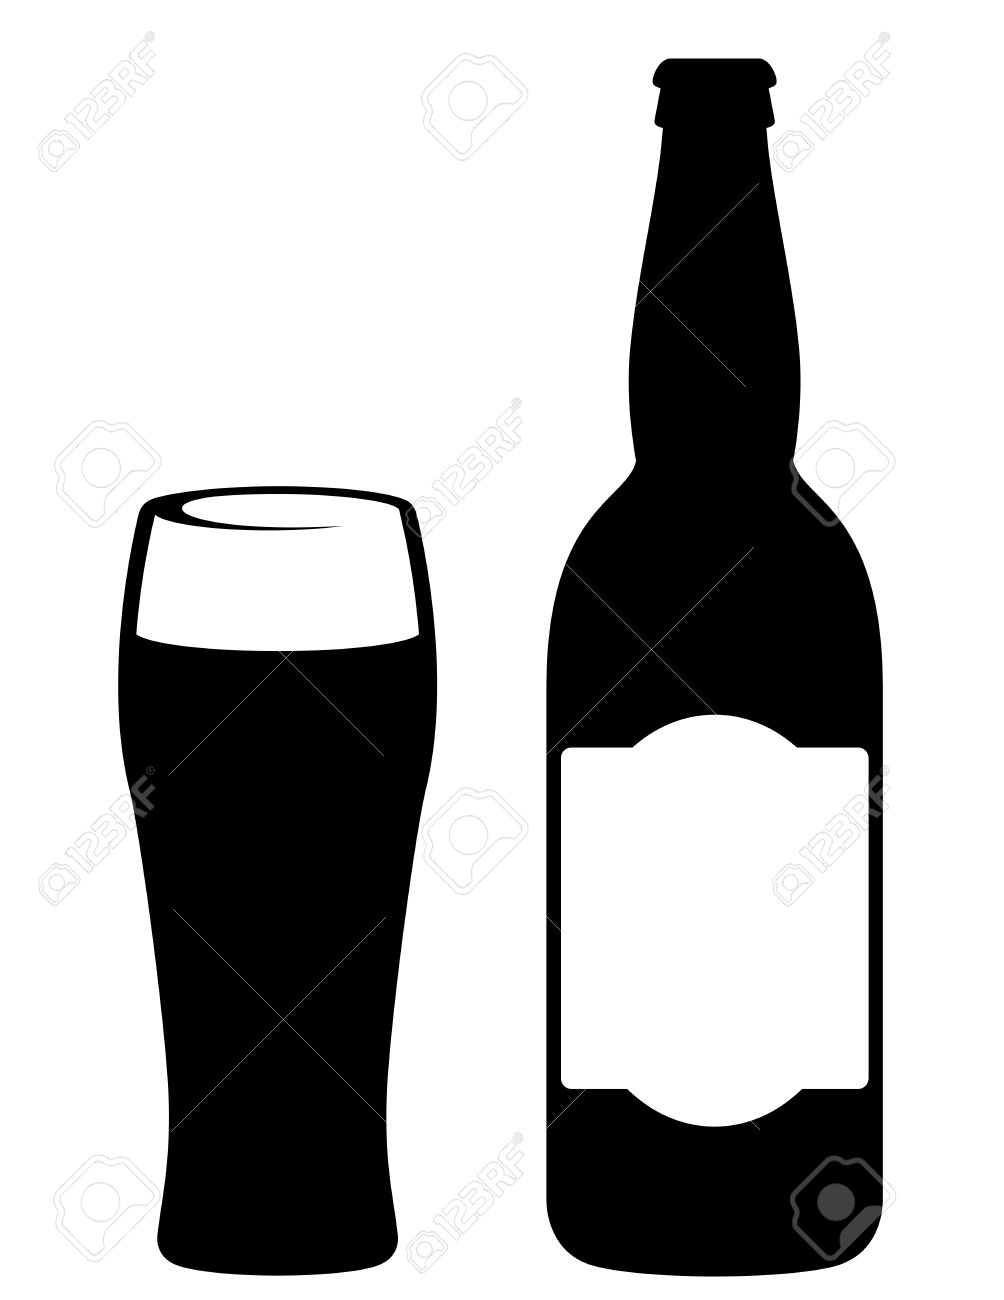 Silhouette of bottled beer Royalty Free Stock Images clipart.